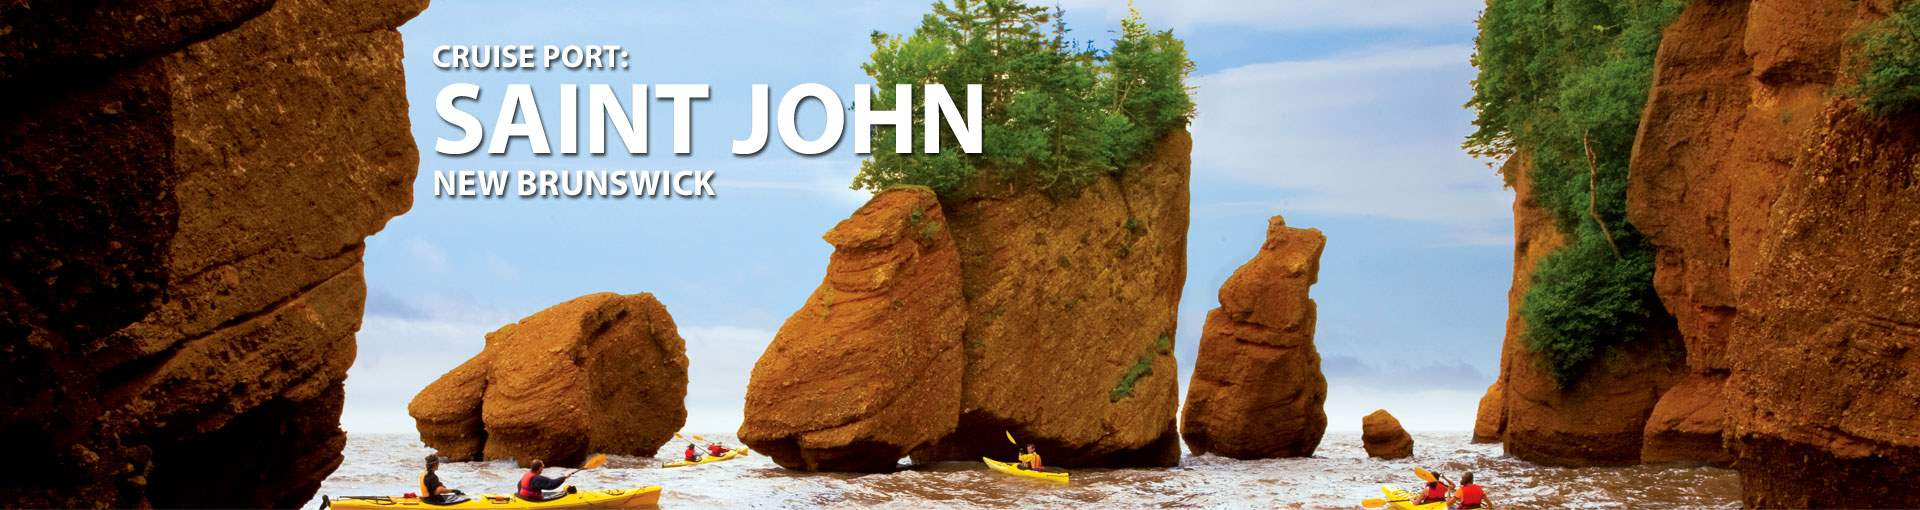 Cruises to Saint John, New Brunswick